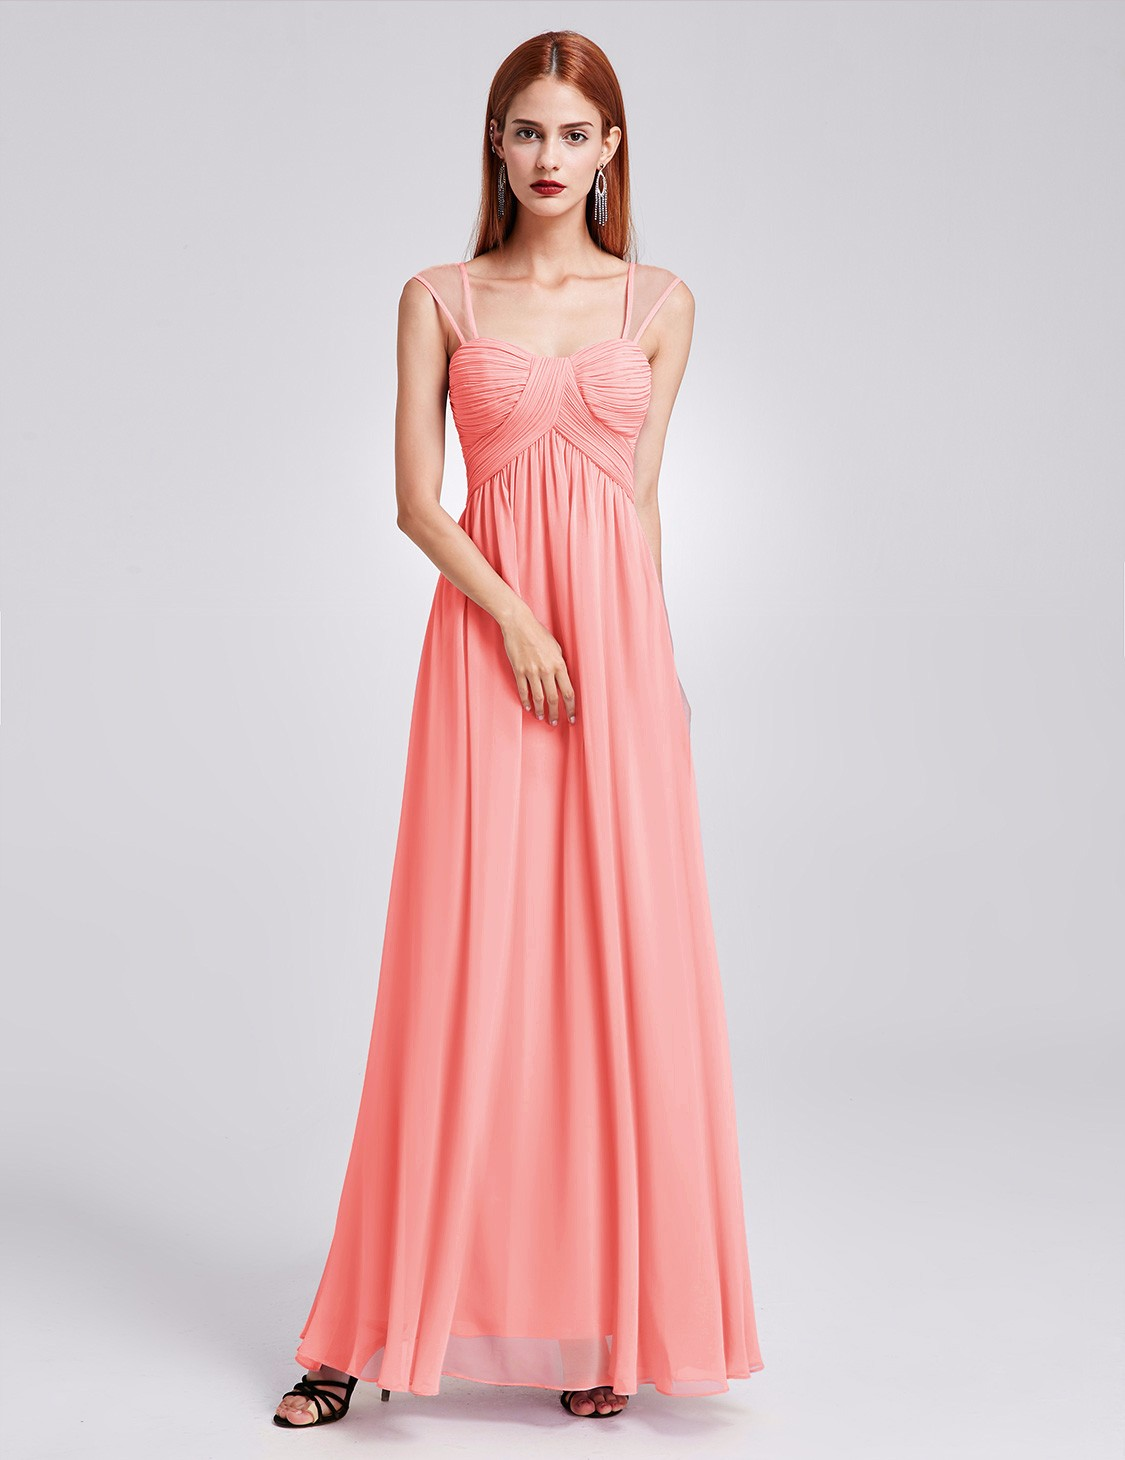 Shop All the Cocktail & Party Dresses on sale in your size today from hundreds of stores -- all in one place.